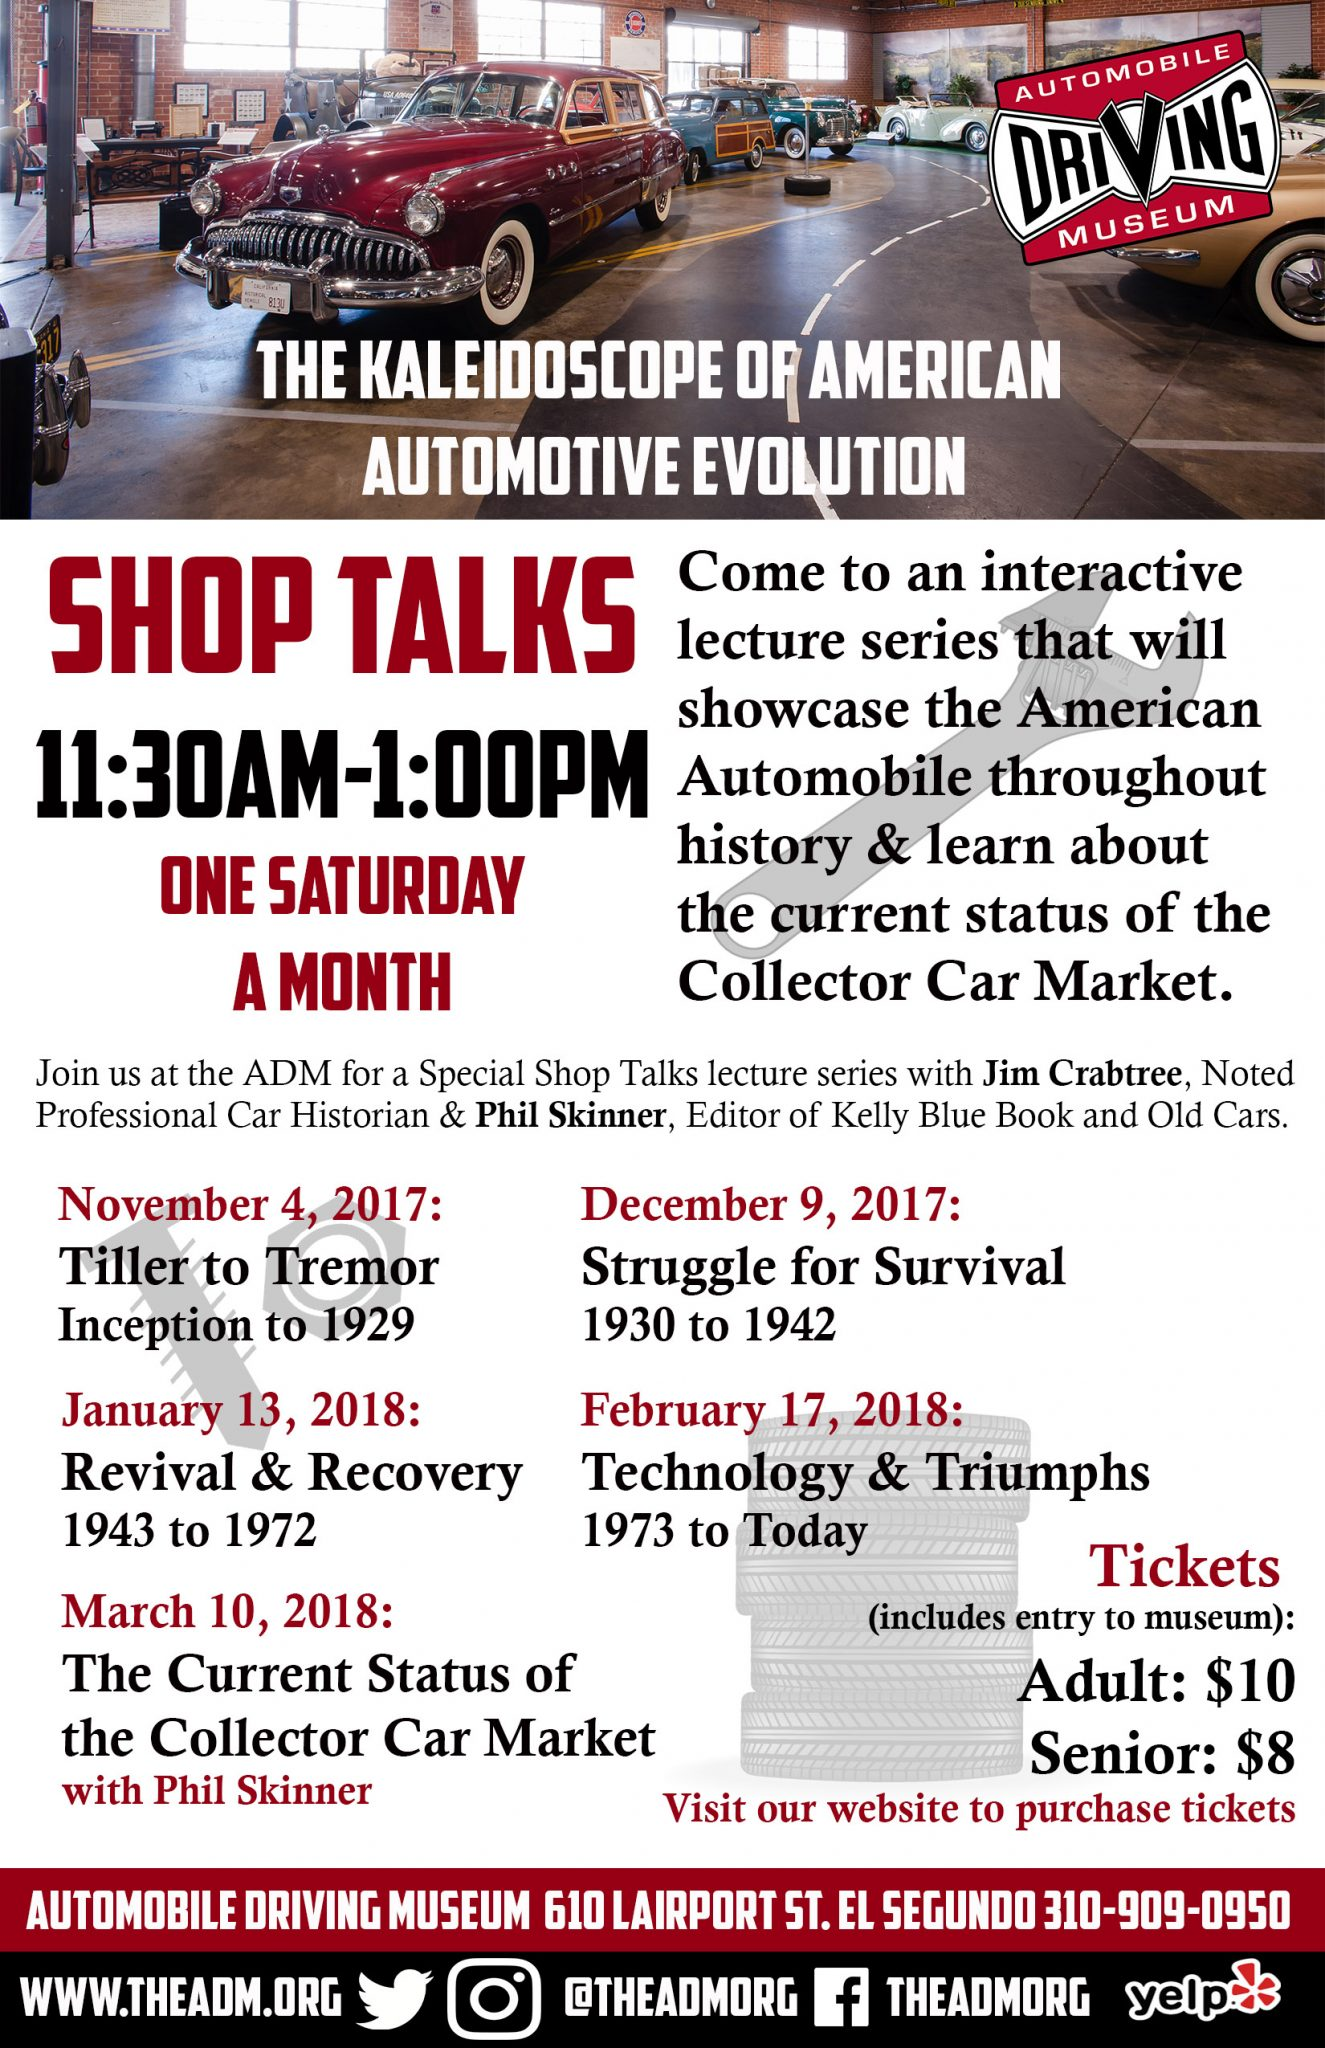 SHOP TALKS - The Kaleidoscope of American Automotive Evolution ...